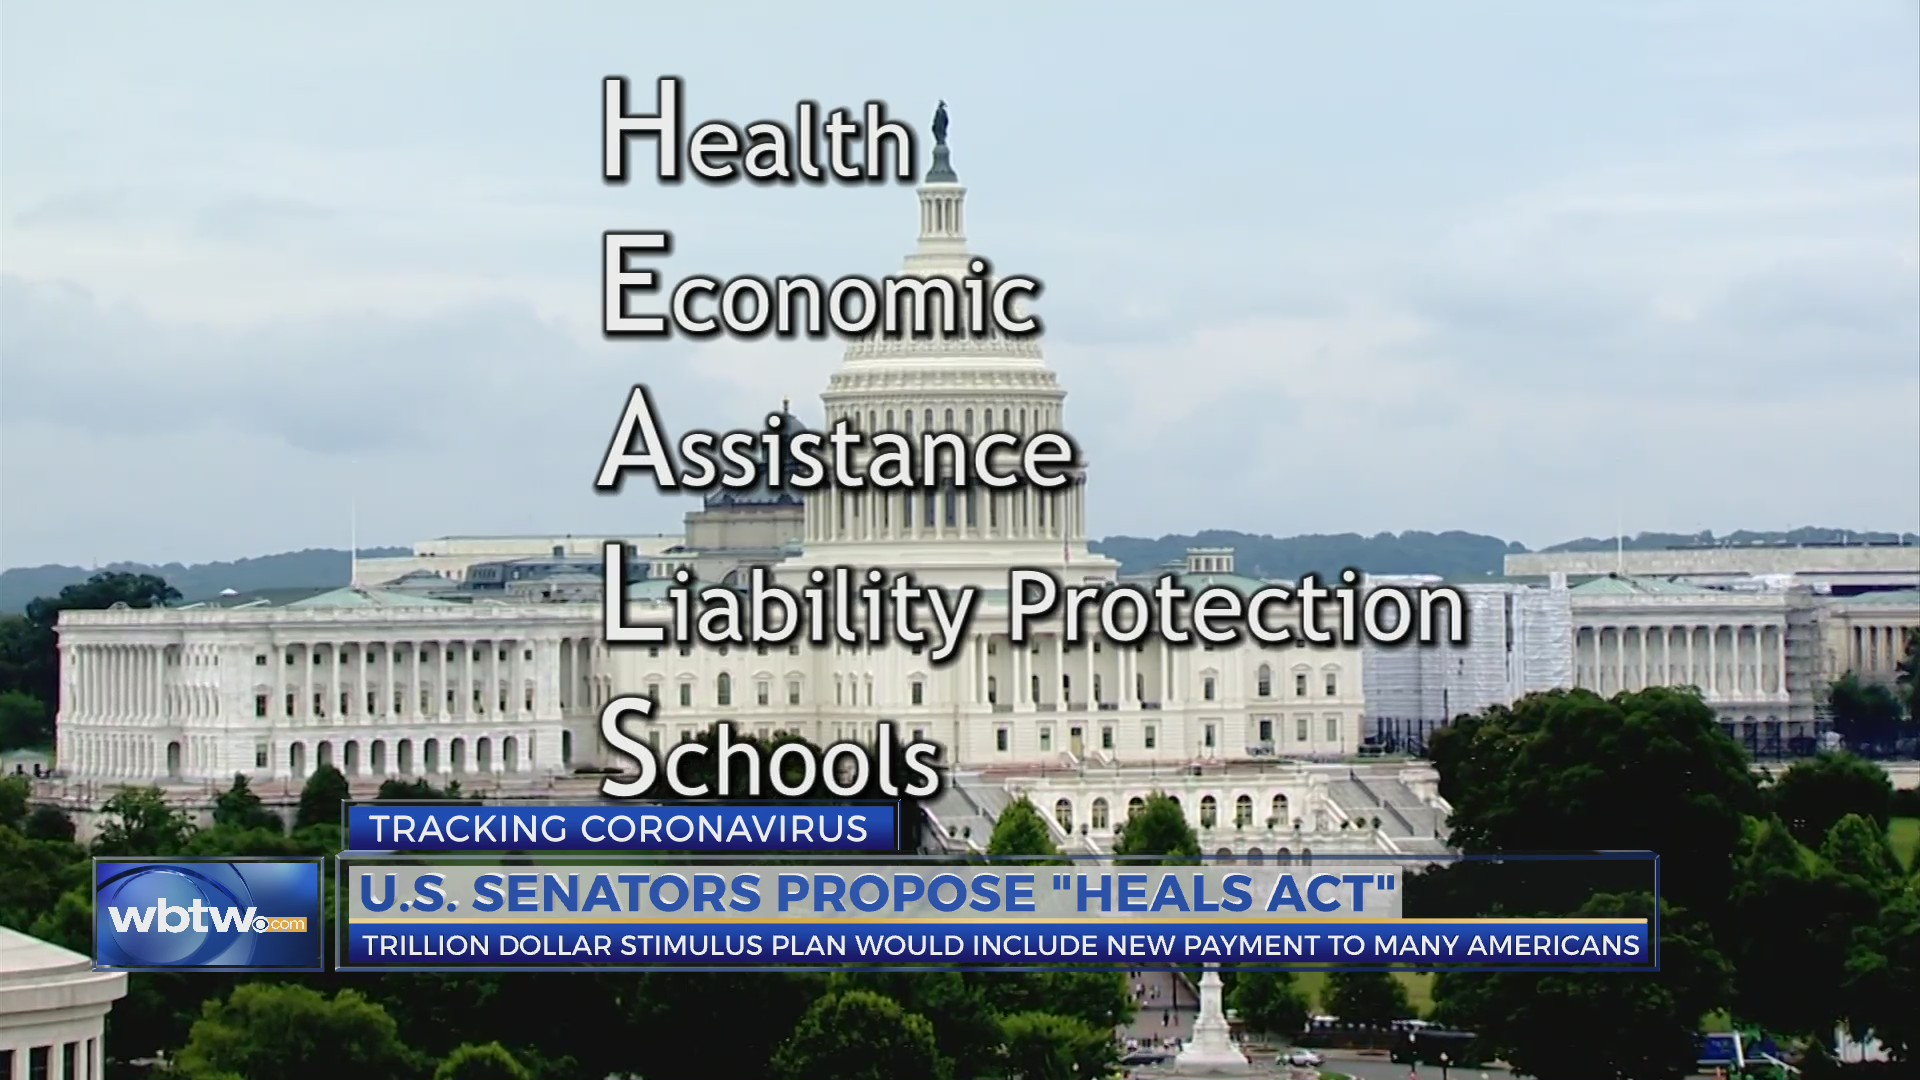 HEALS Act: Health, Economics Assistance, liability protection, schools